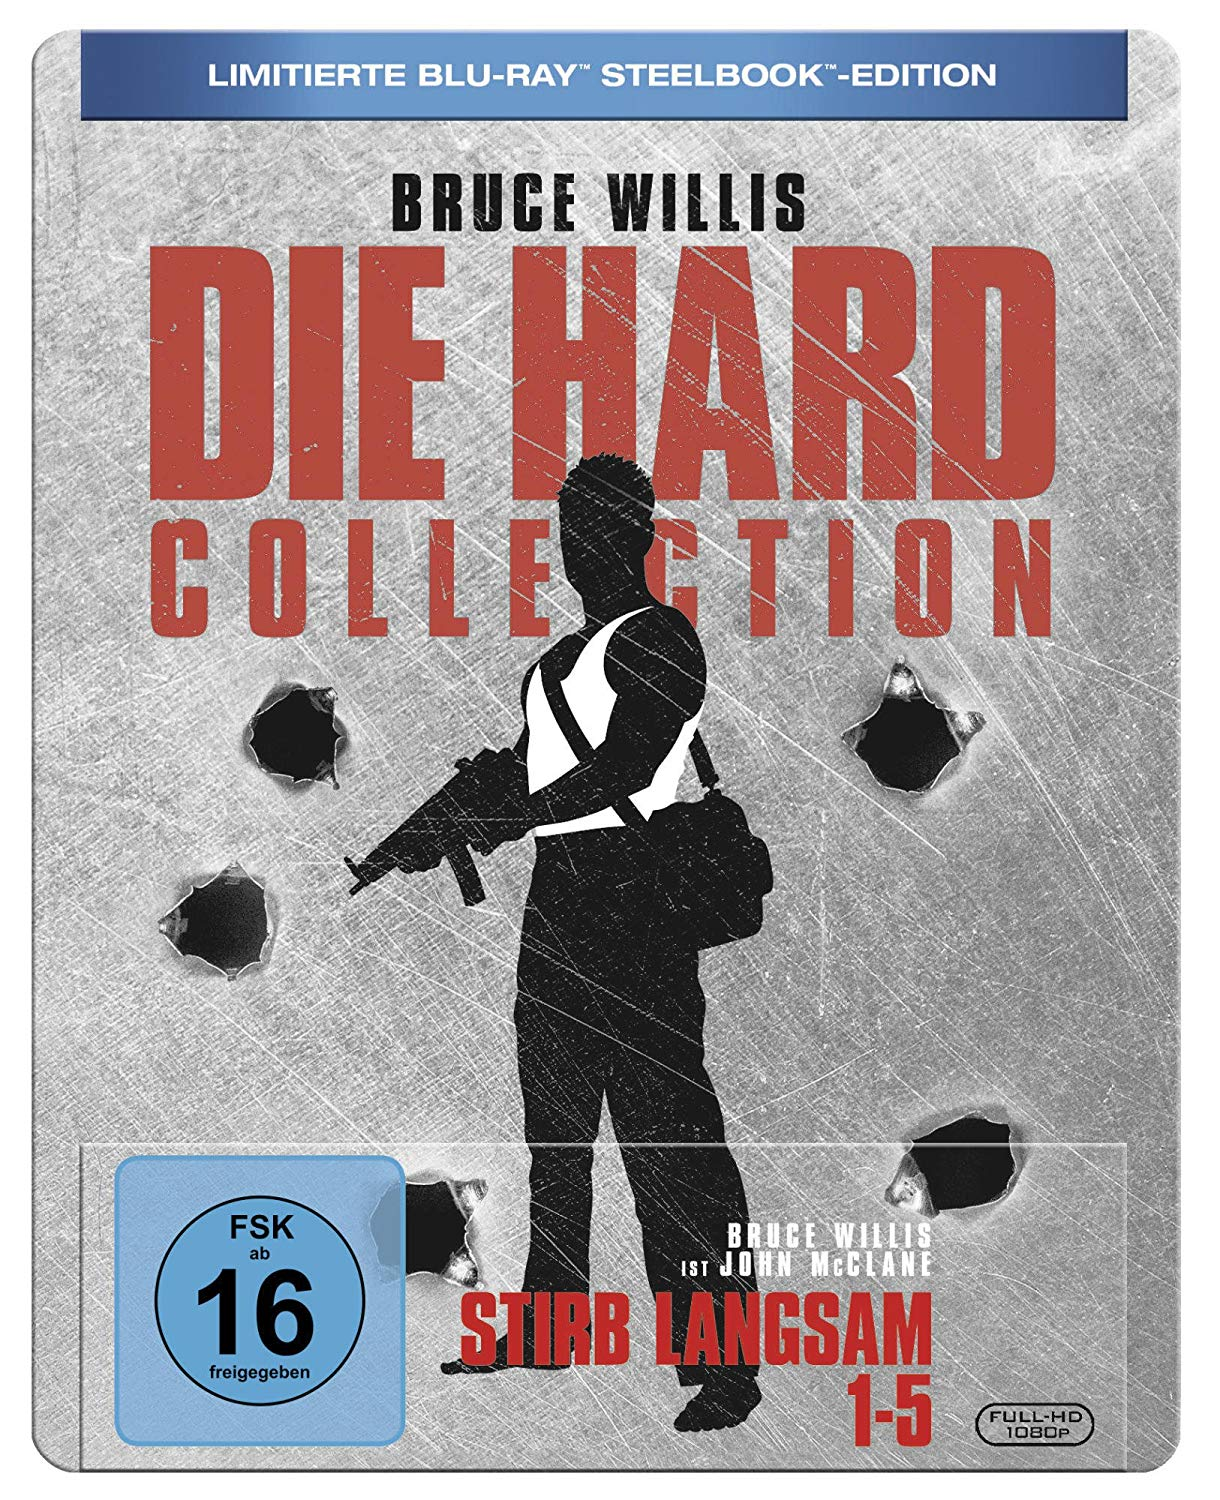 Stirb Langsam 1-5 Steelbook-Collection bei Amazon bestellen